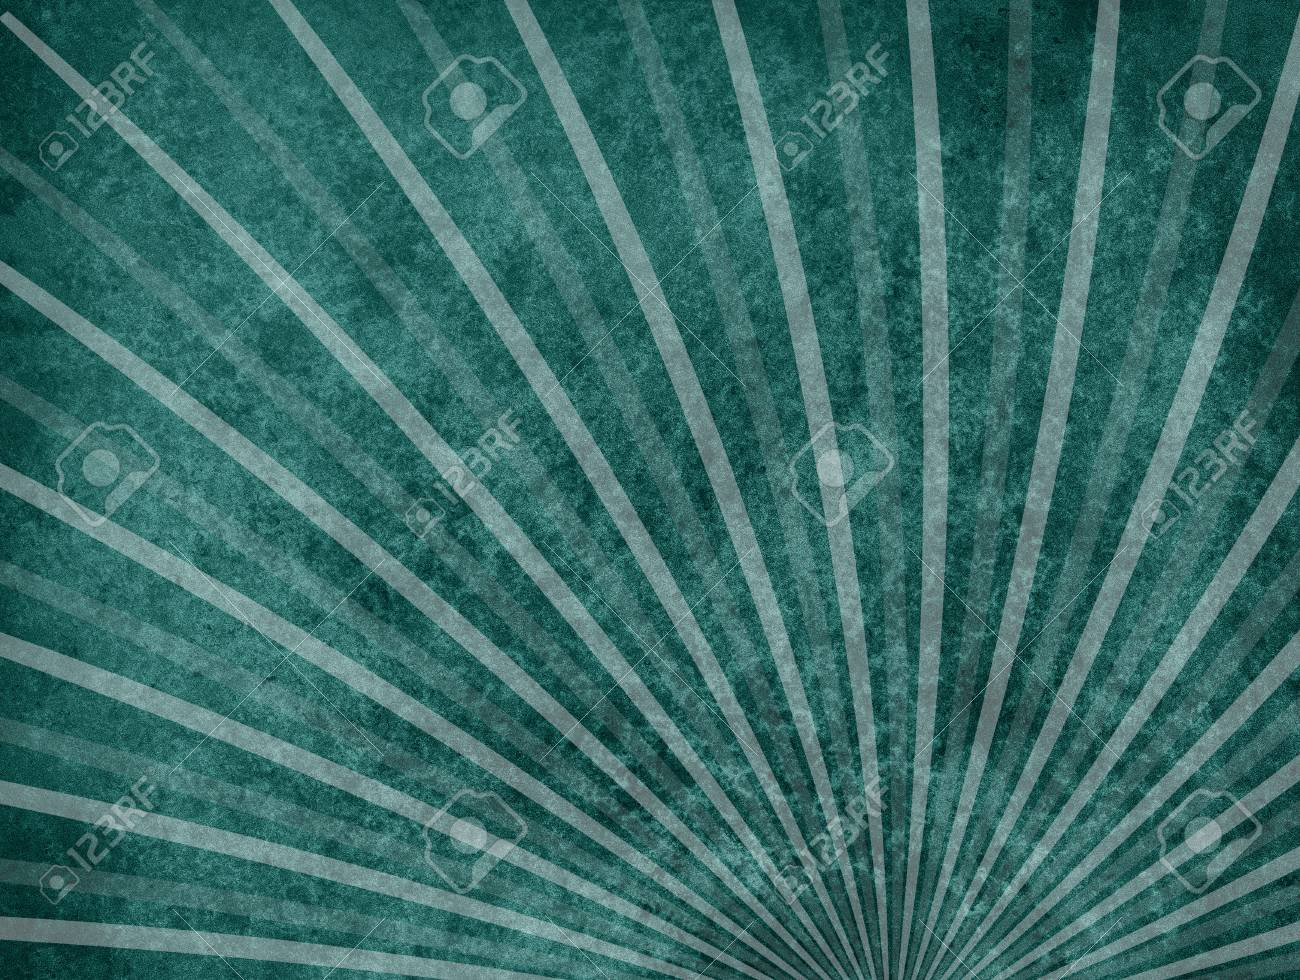 Abstract Dark Teal Blue Green Background With Rough Distressed